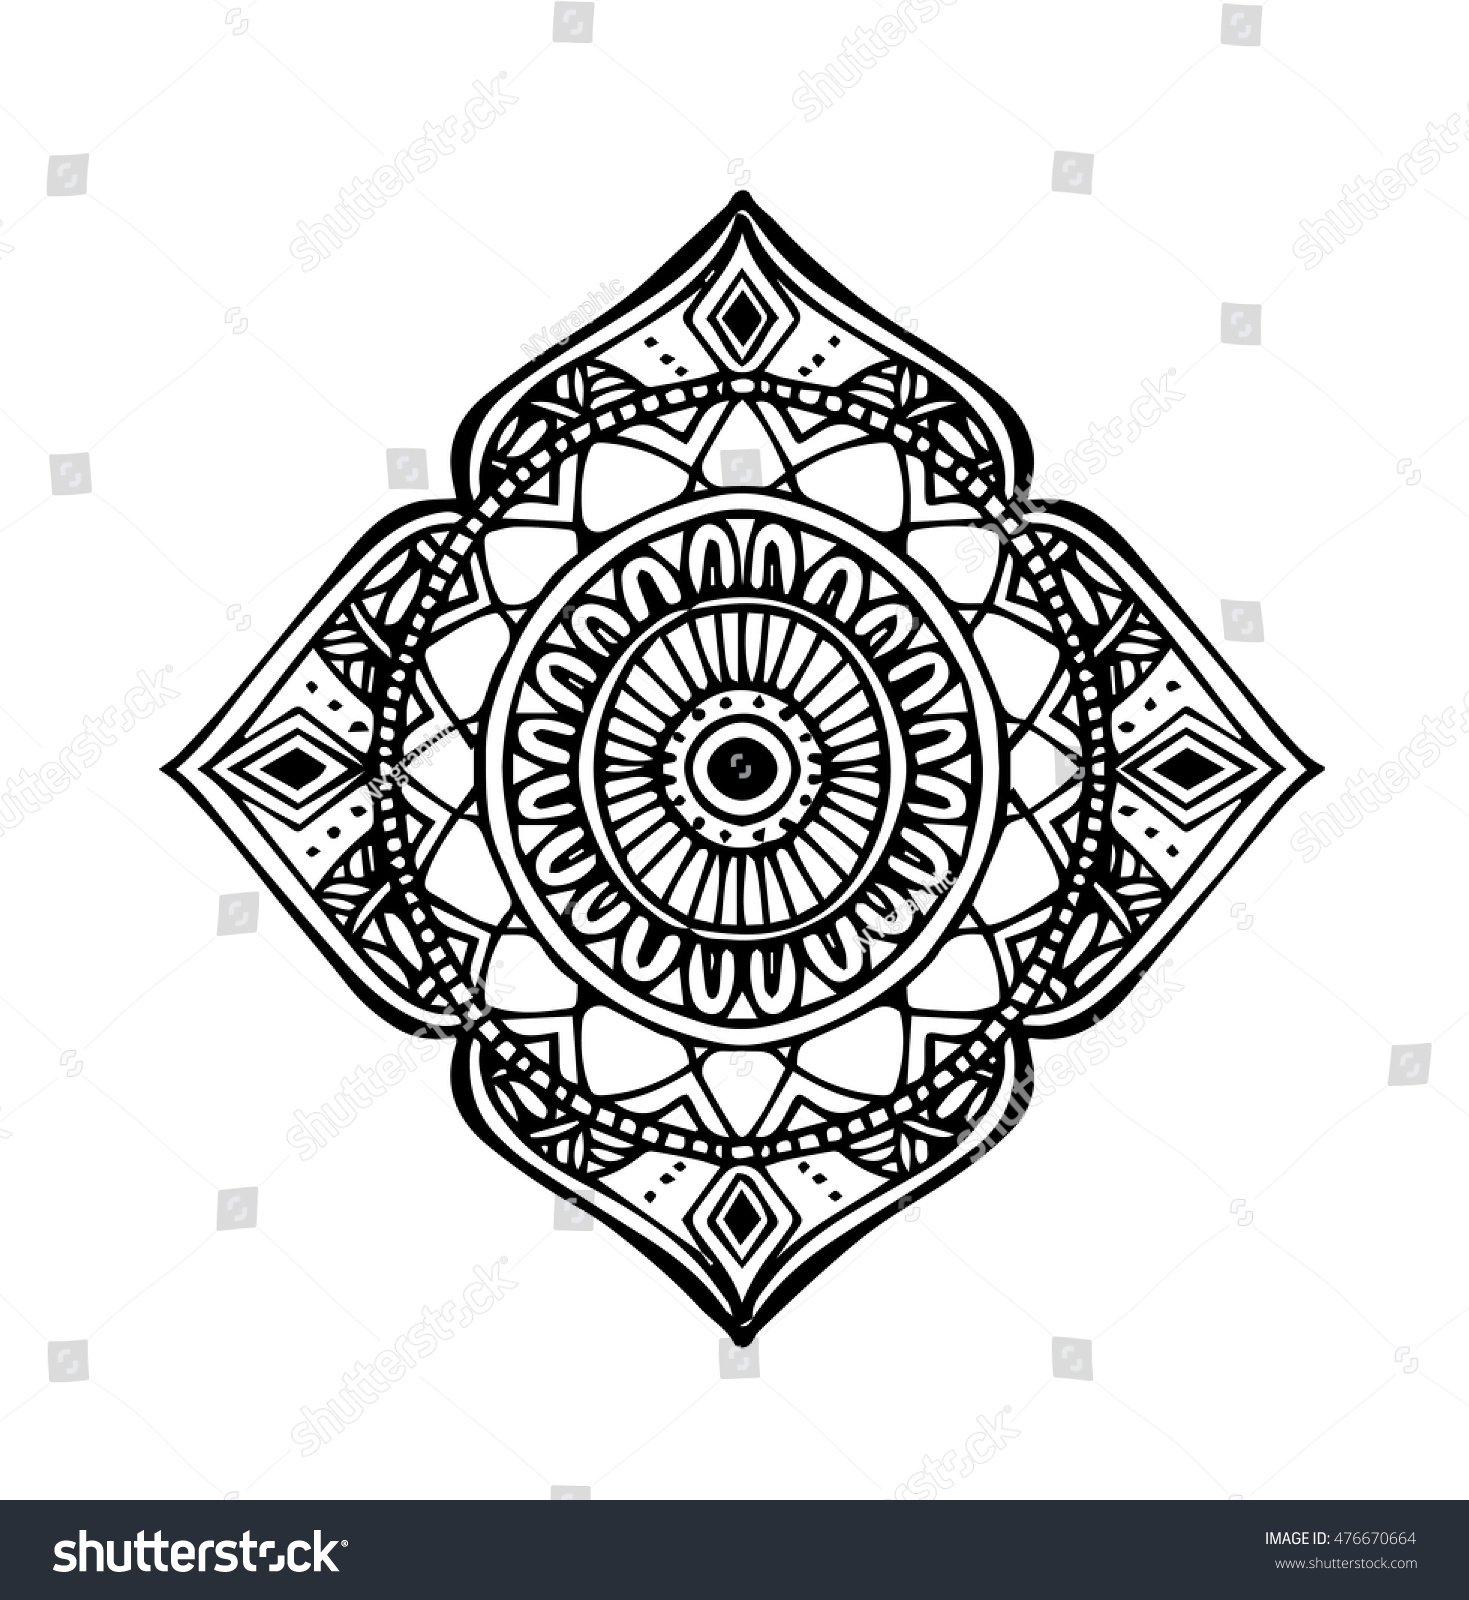 Vector Hand Draw Of Abstract Circle Doodle Flower Ornament In Zentangle  Style